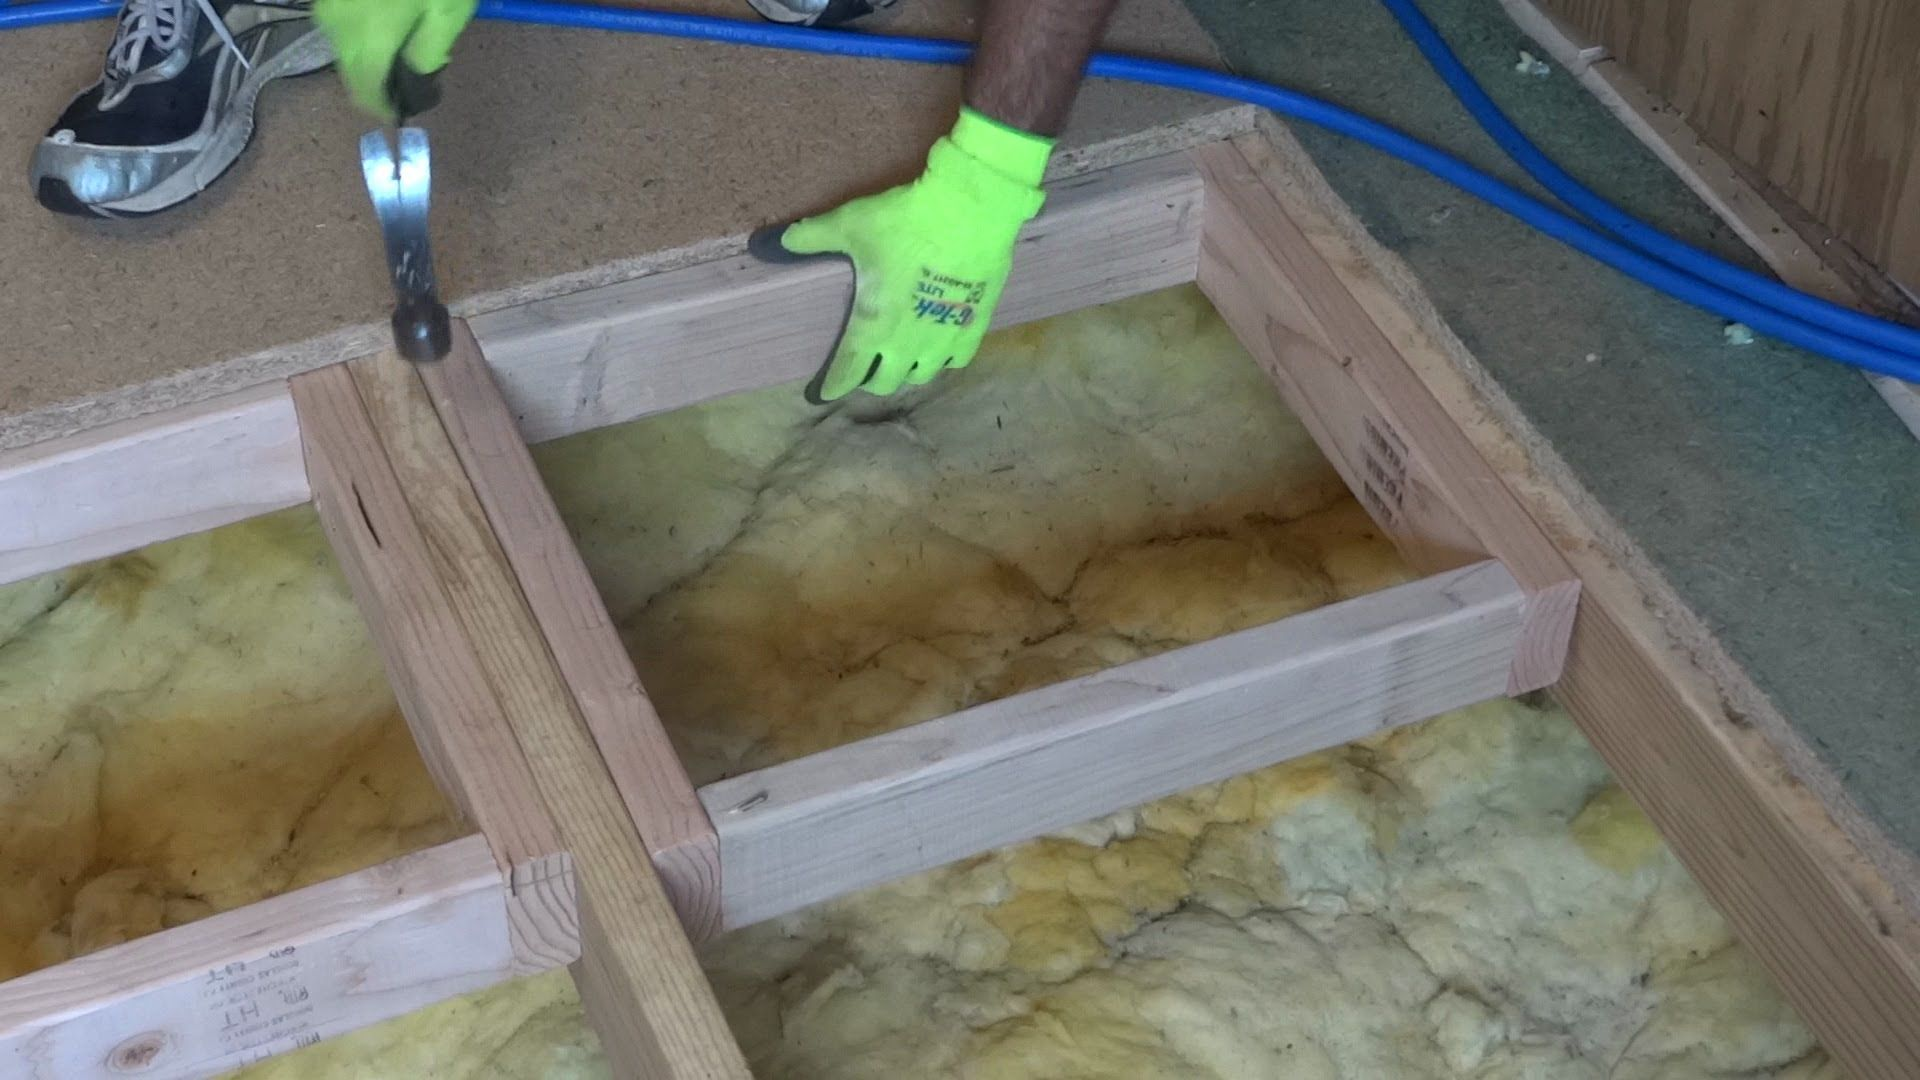 How to repair or replace a damaged section of sub floor with square     How to repair or replace a damaged section of sub floor with square framing  inserts